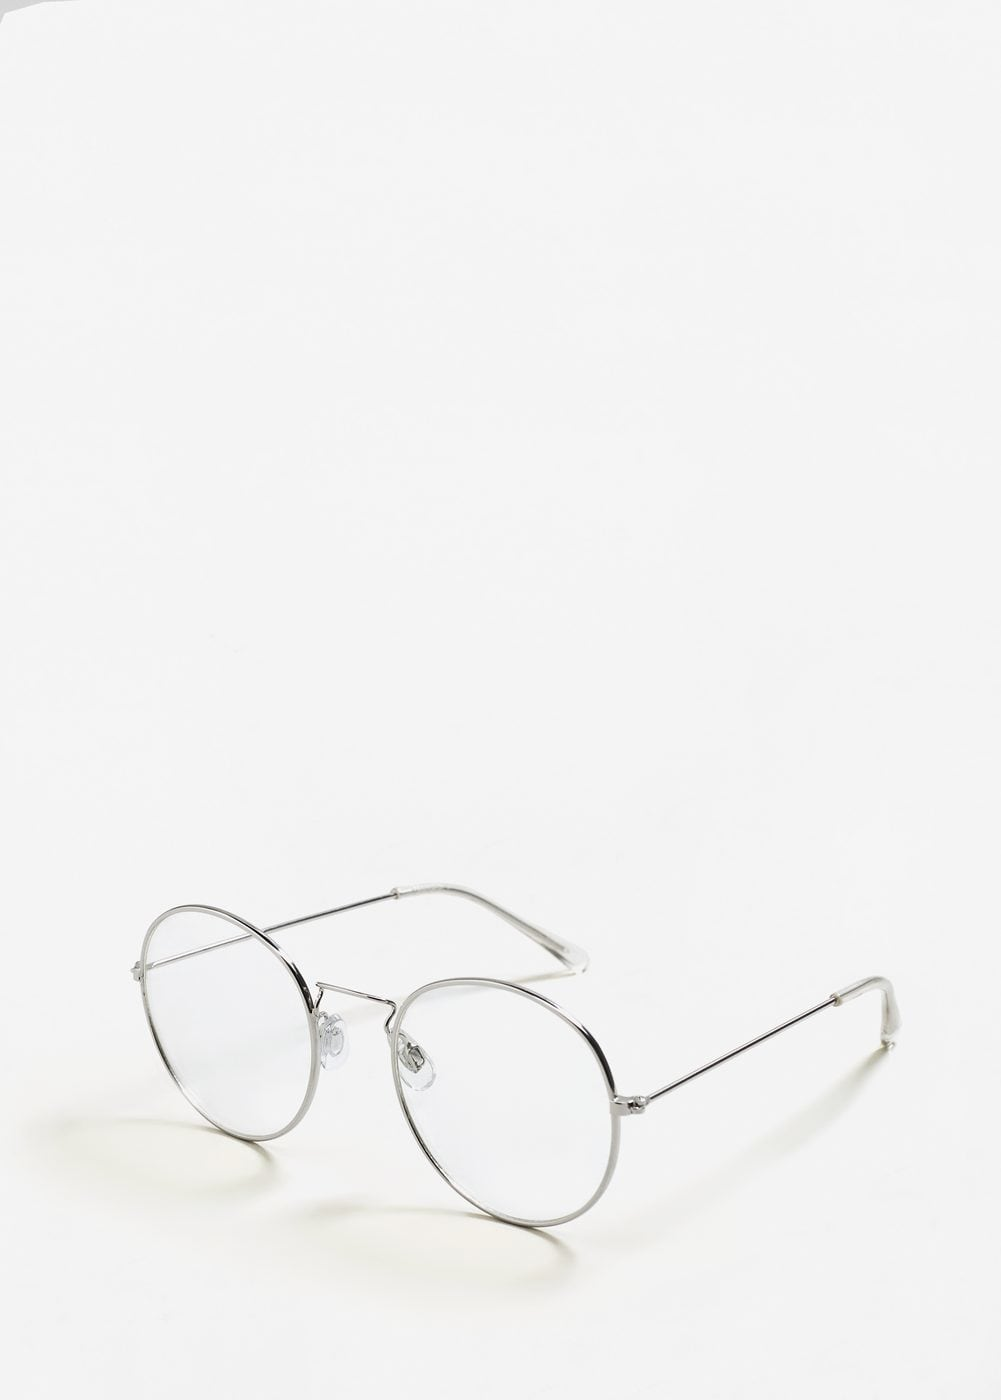 1001x1400 Transparent Rounded Sunglasses